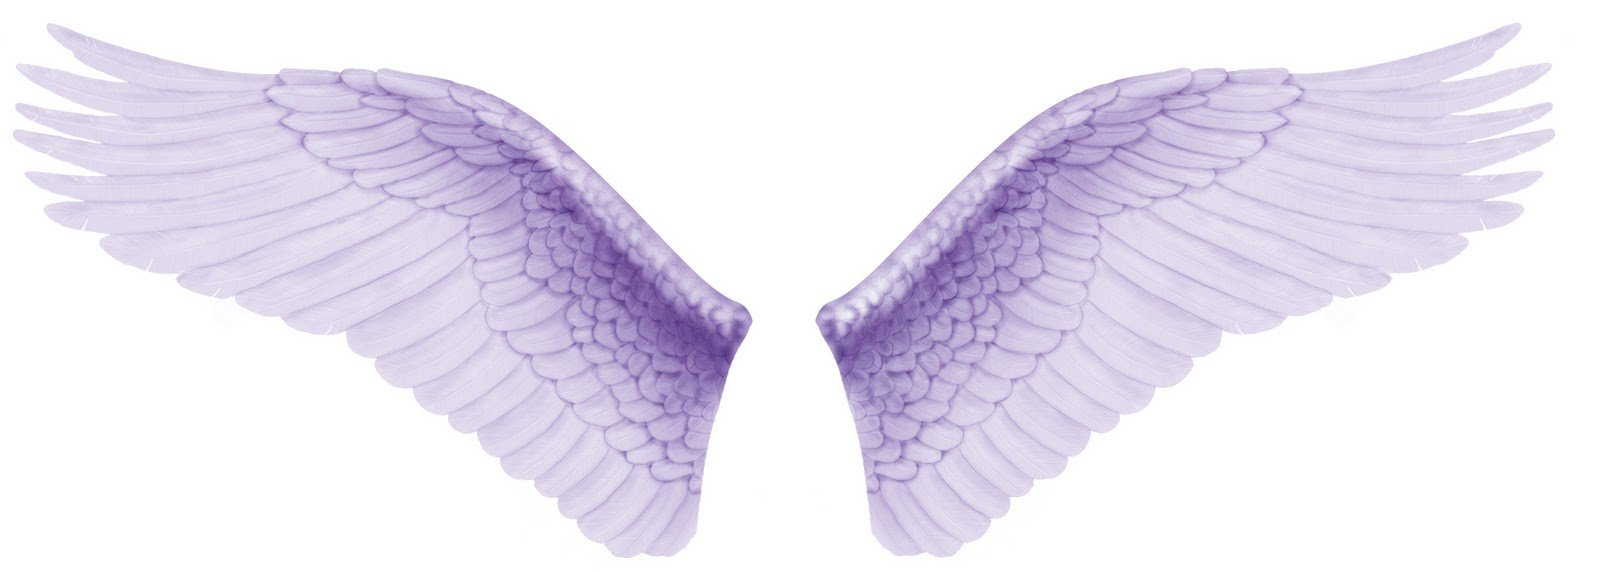 Angel wingsangel wing tattoosangel wingpictures of wingspictures 1600x572